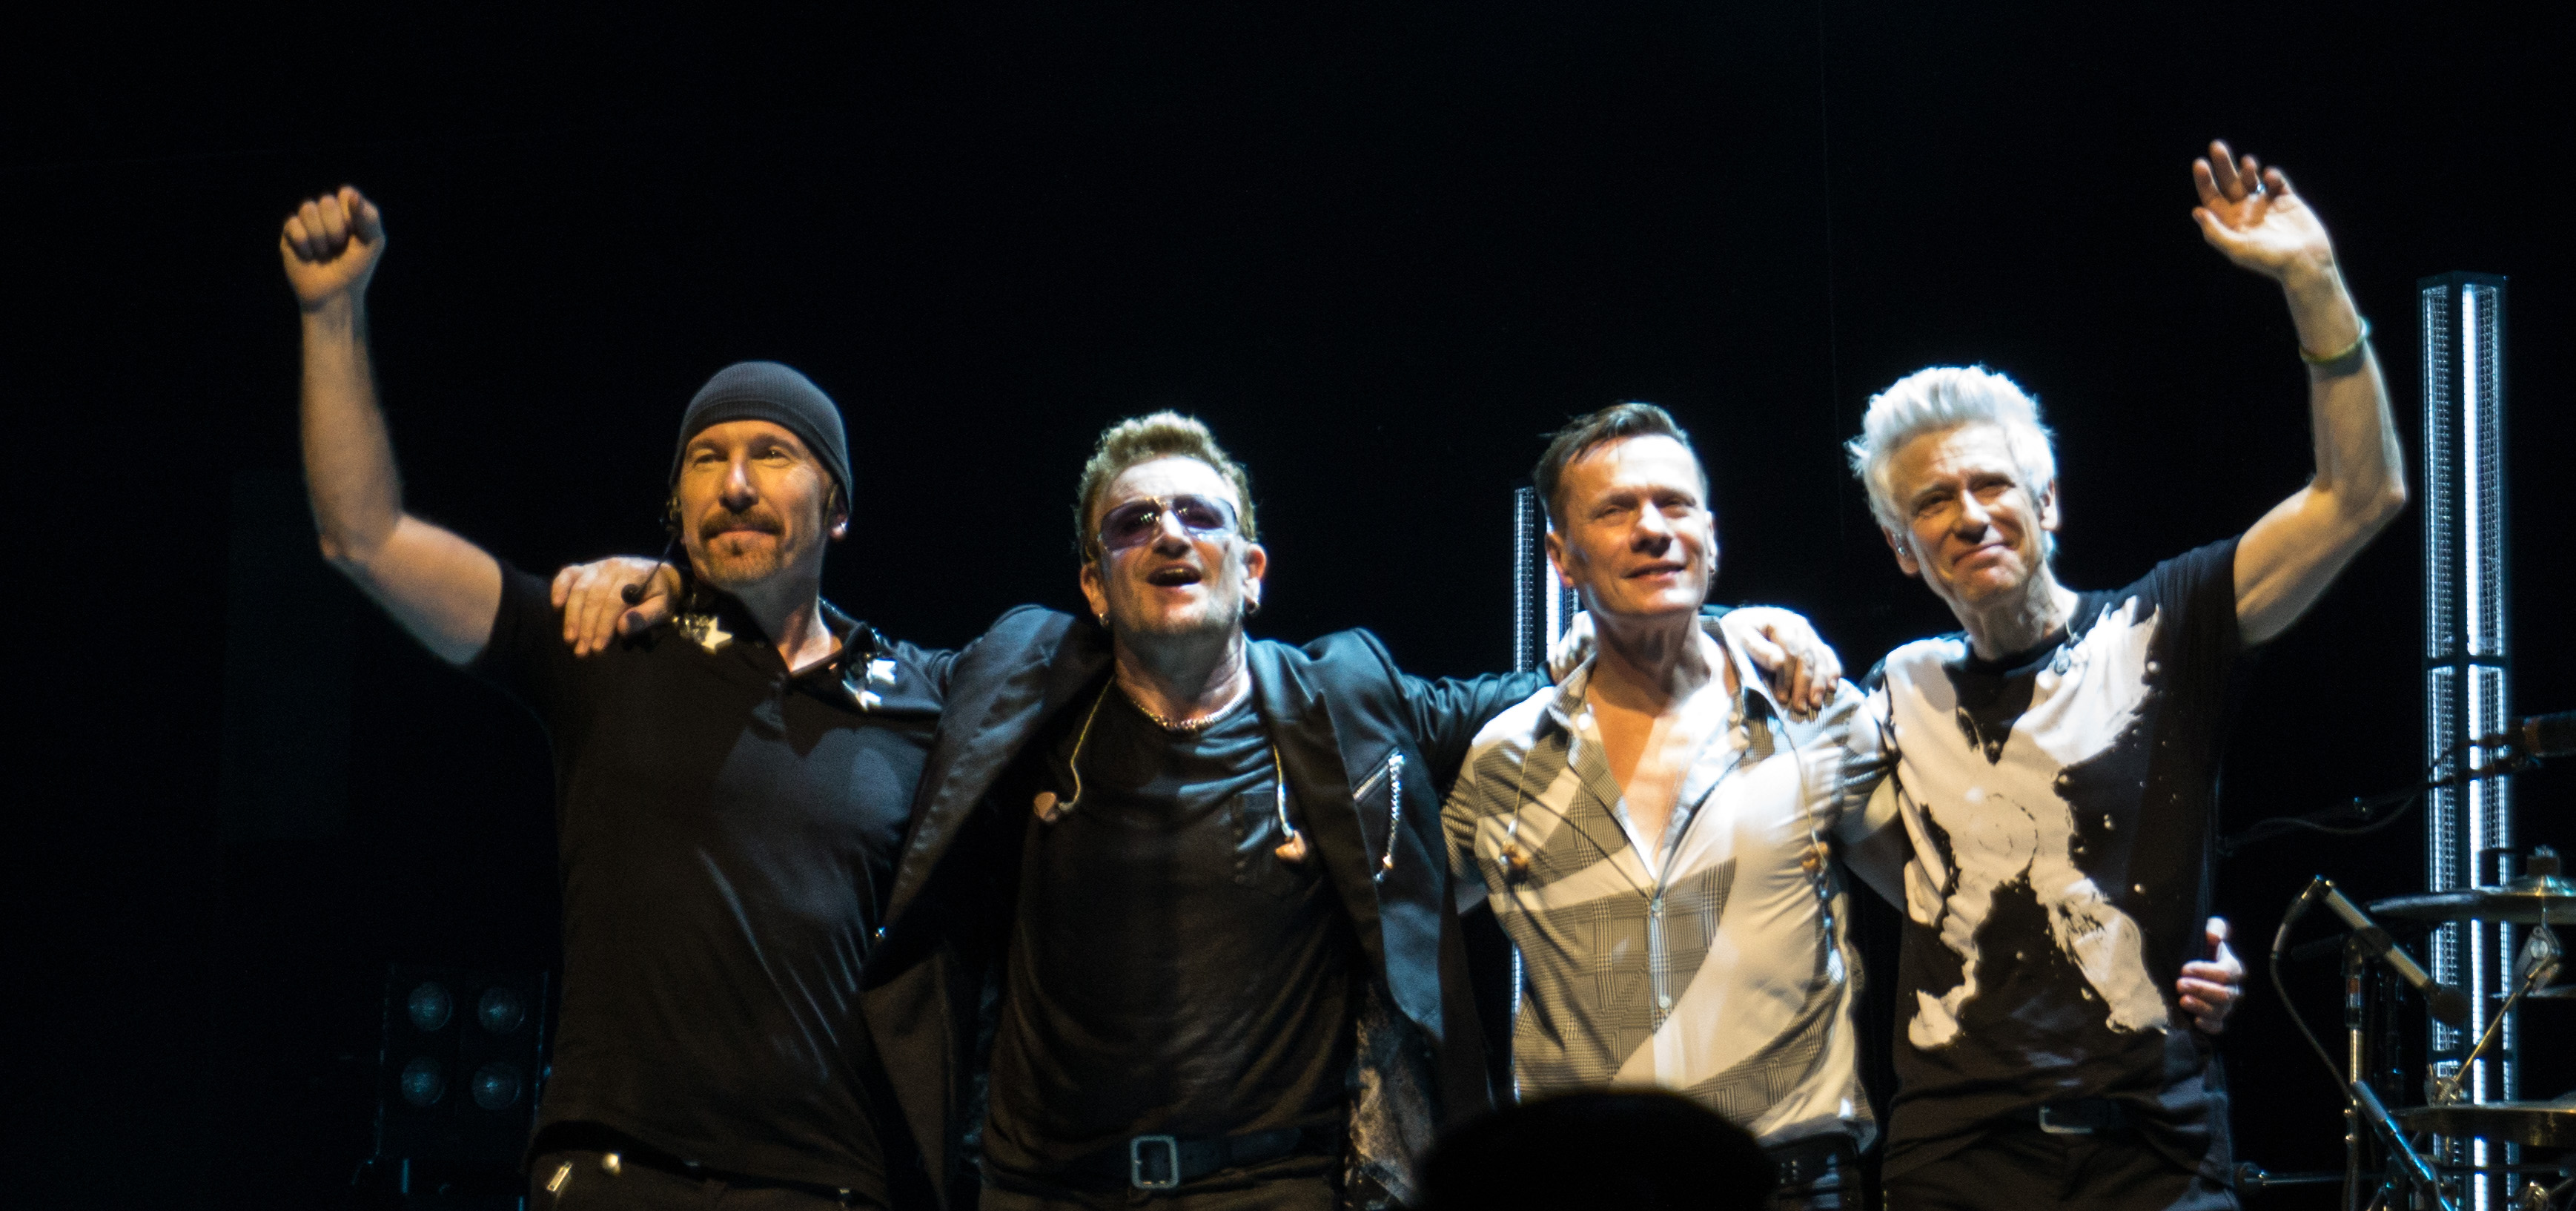 U2 takes a curtain call during a 7 November 2015 performance on the Innocence + Experience Tour (from left to right): the Edge, Bono, Mullen, Clayton